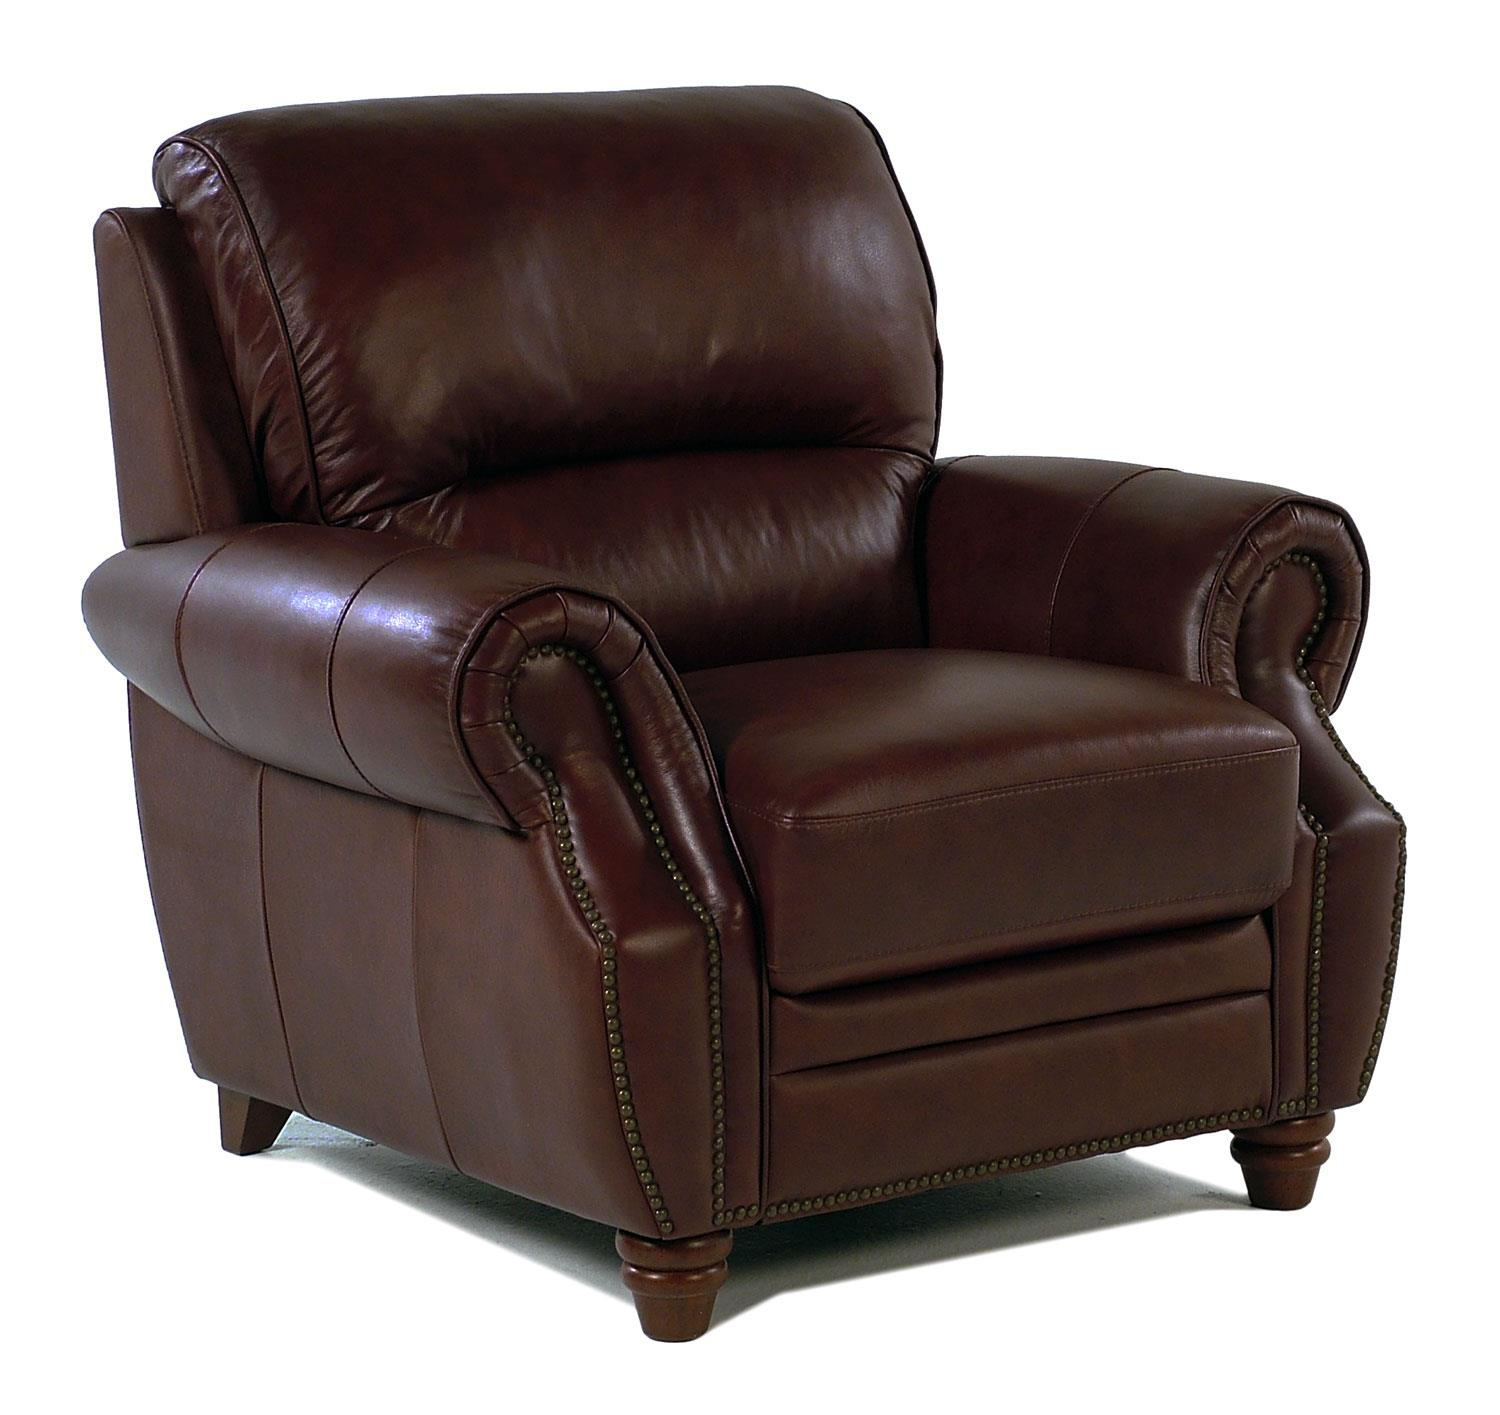 Giovani Barrister Traditional Leather Chair w/ Nailhead Trim - Item Number: 10441NH-AC